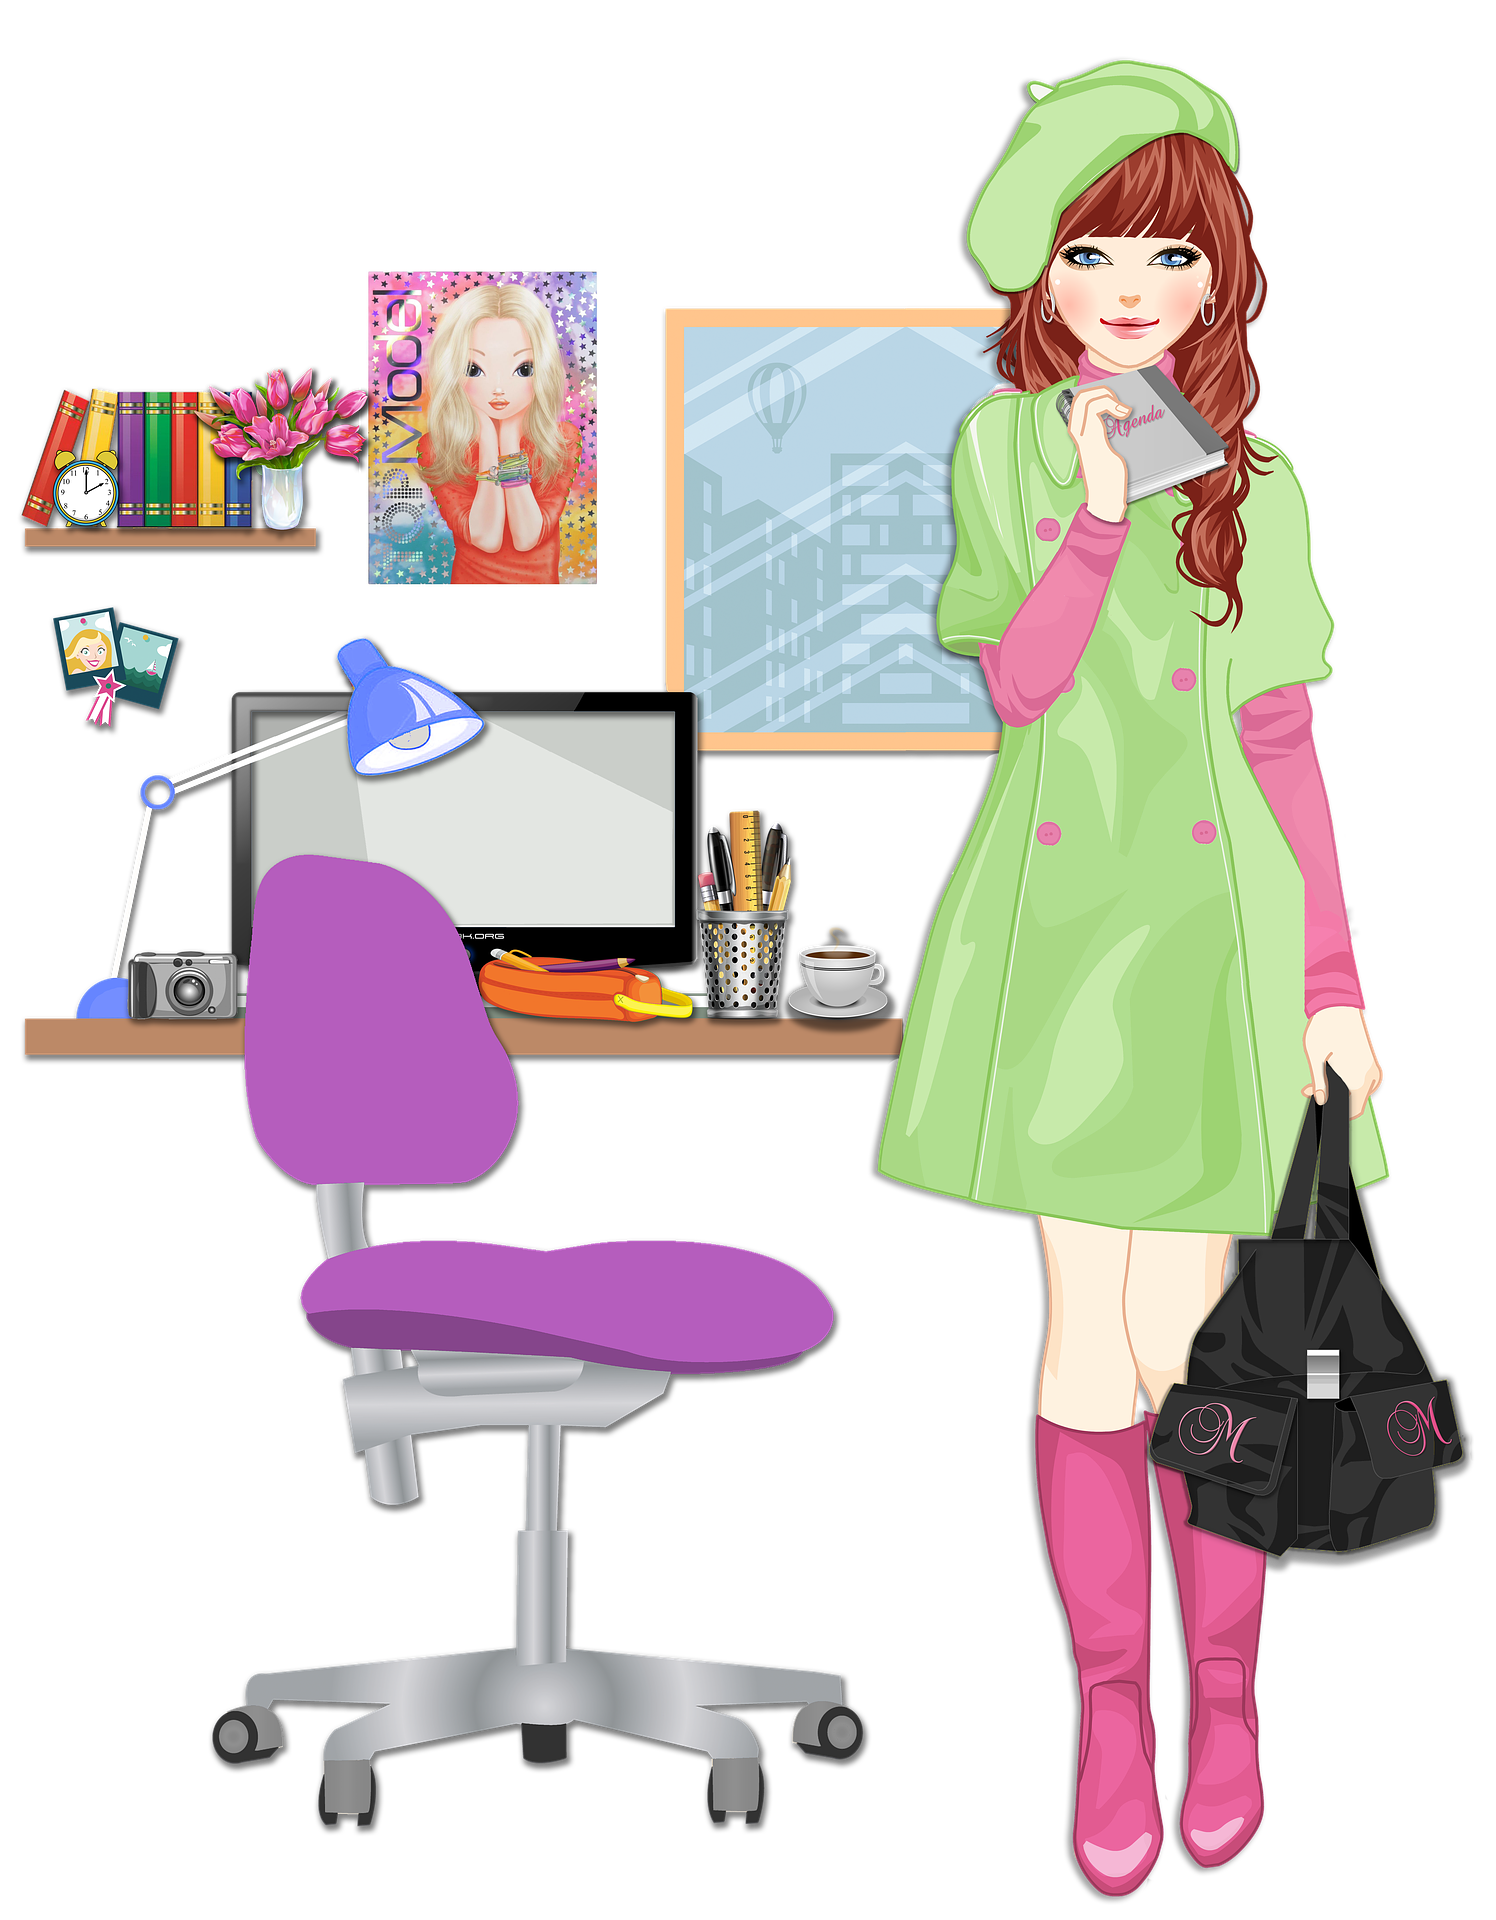 Blonde Girl going college in room with black bag PNG Image